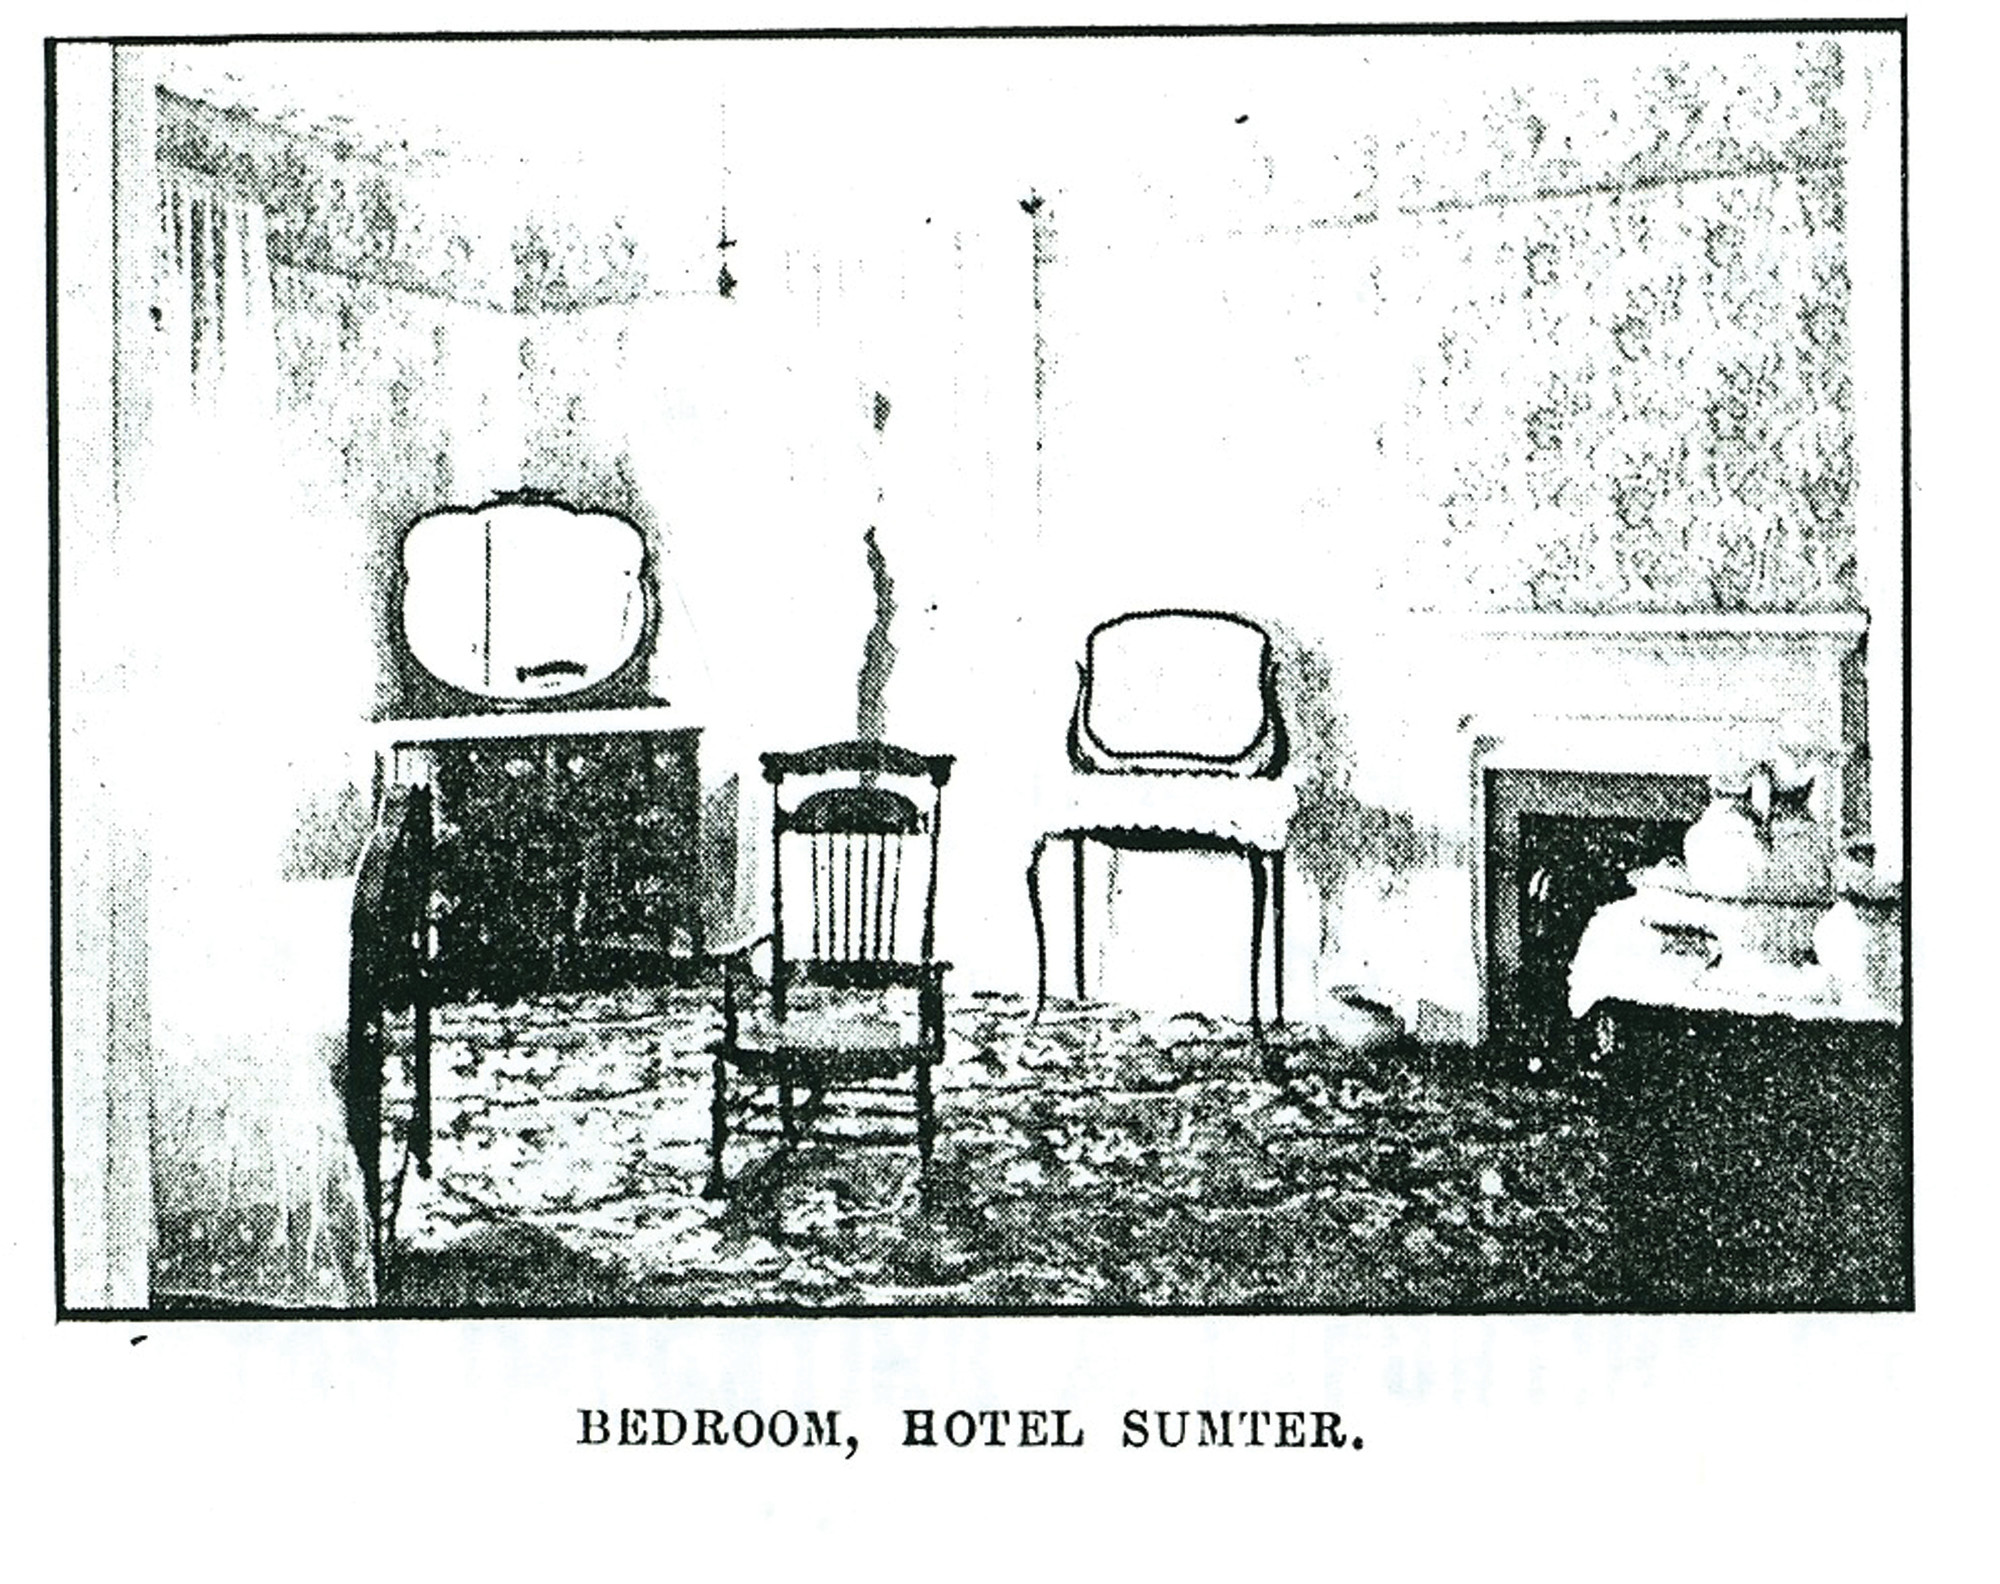 A bedroom in Hotel Sumter